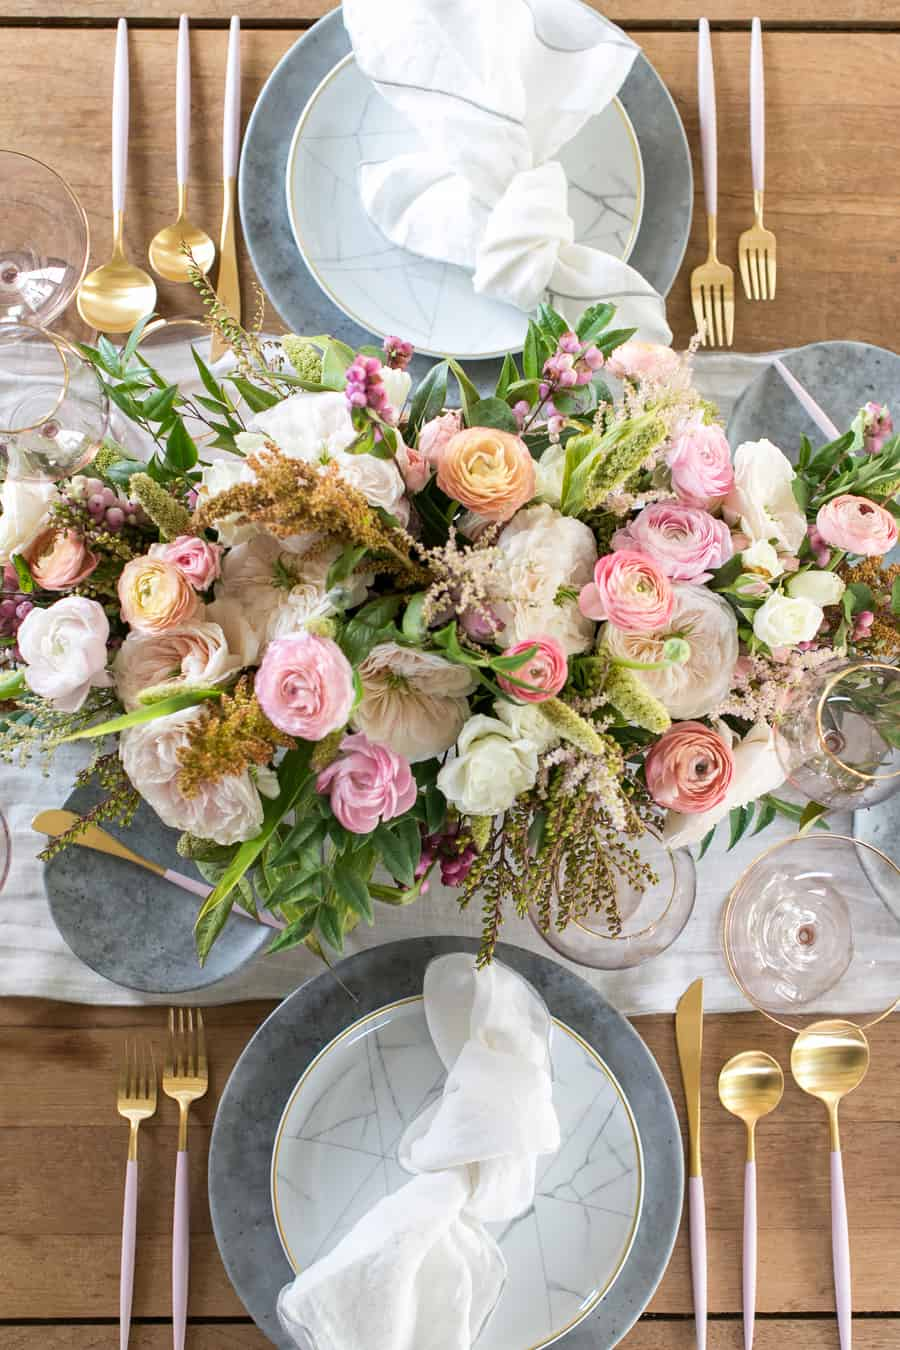 A modern table setting with flowers, plates, forks on a wooden table.